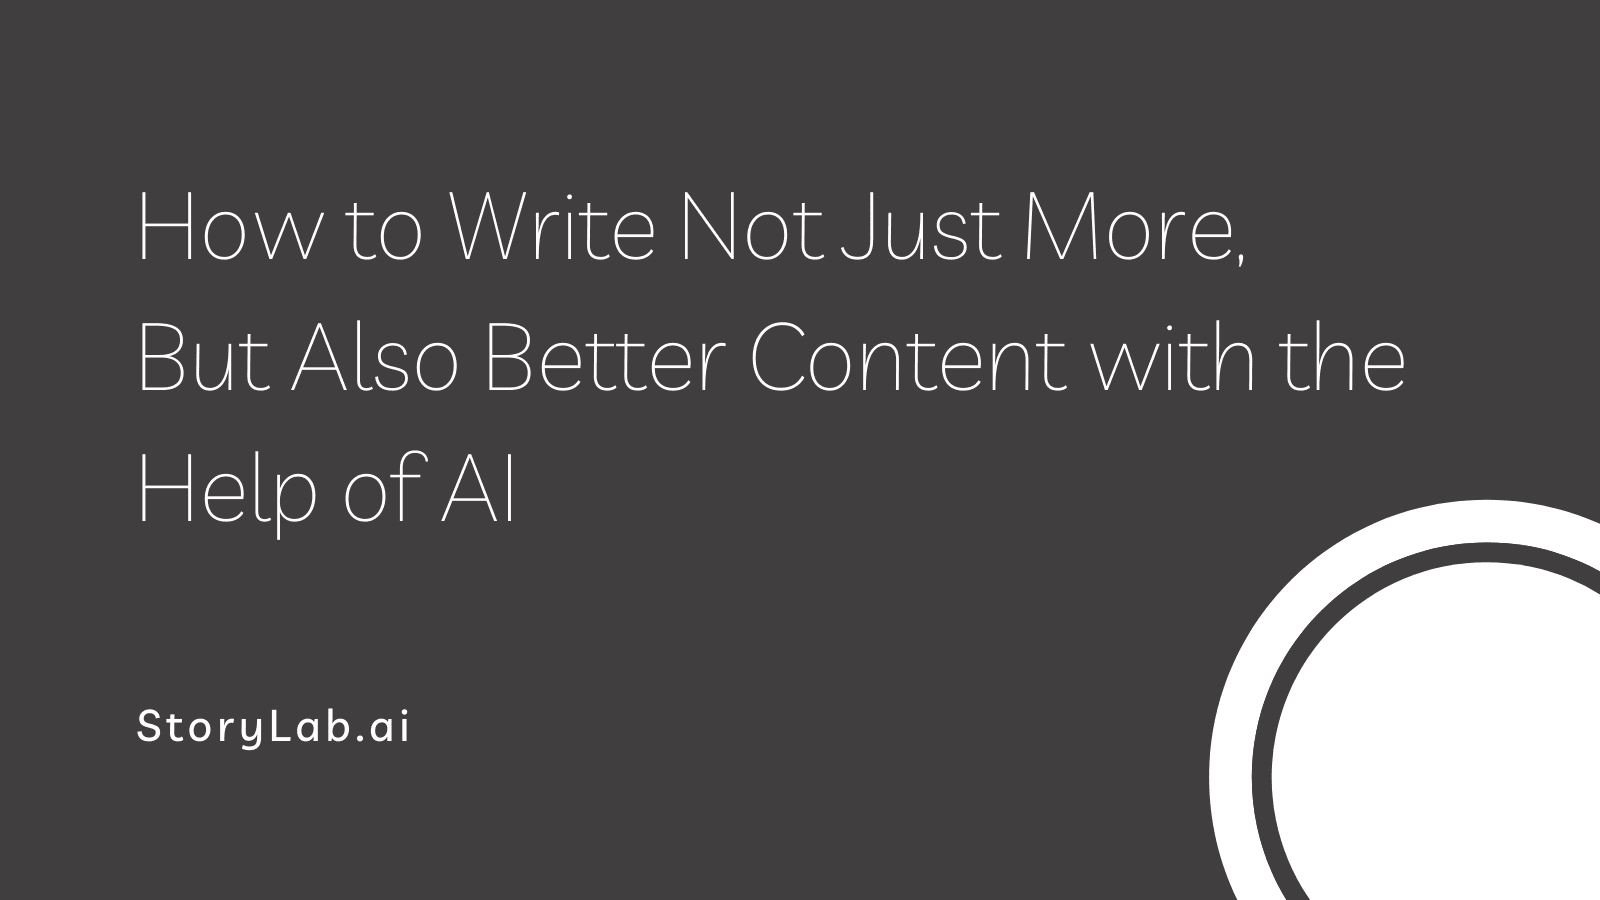 How to write more and better with the help of ai